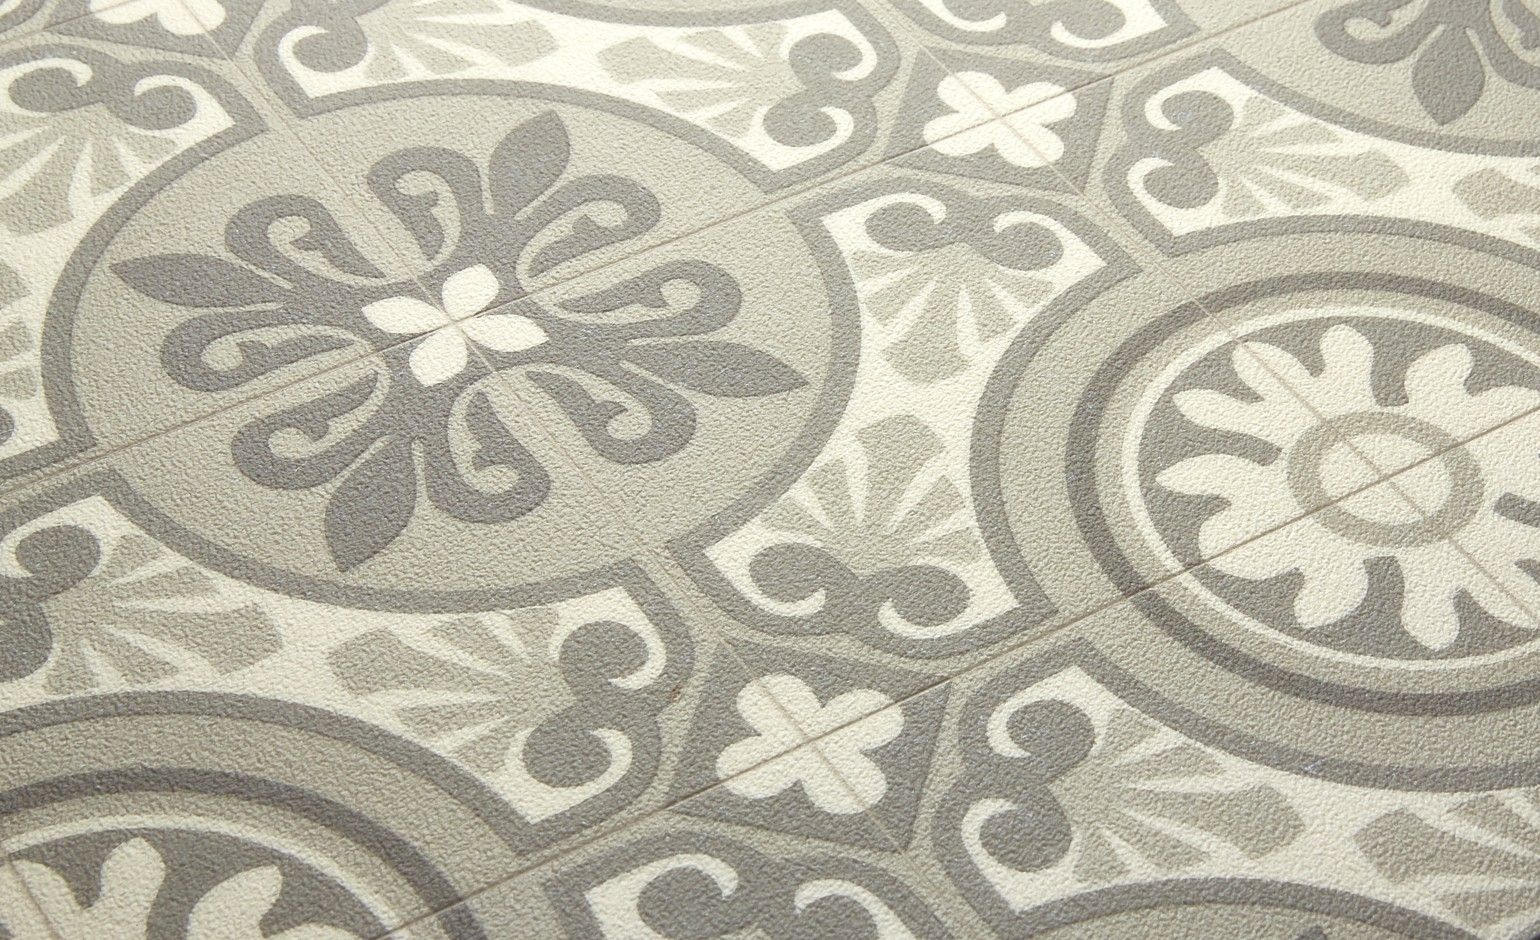 Saint maclou sol vinyle emotion carreau ciment beige for Tapis carreaux de ciment saint maclou